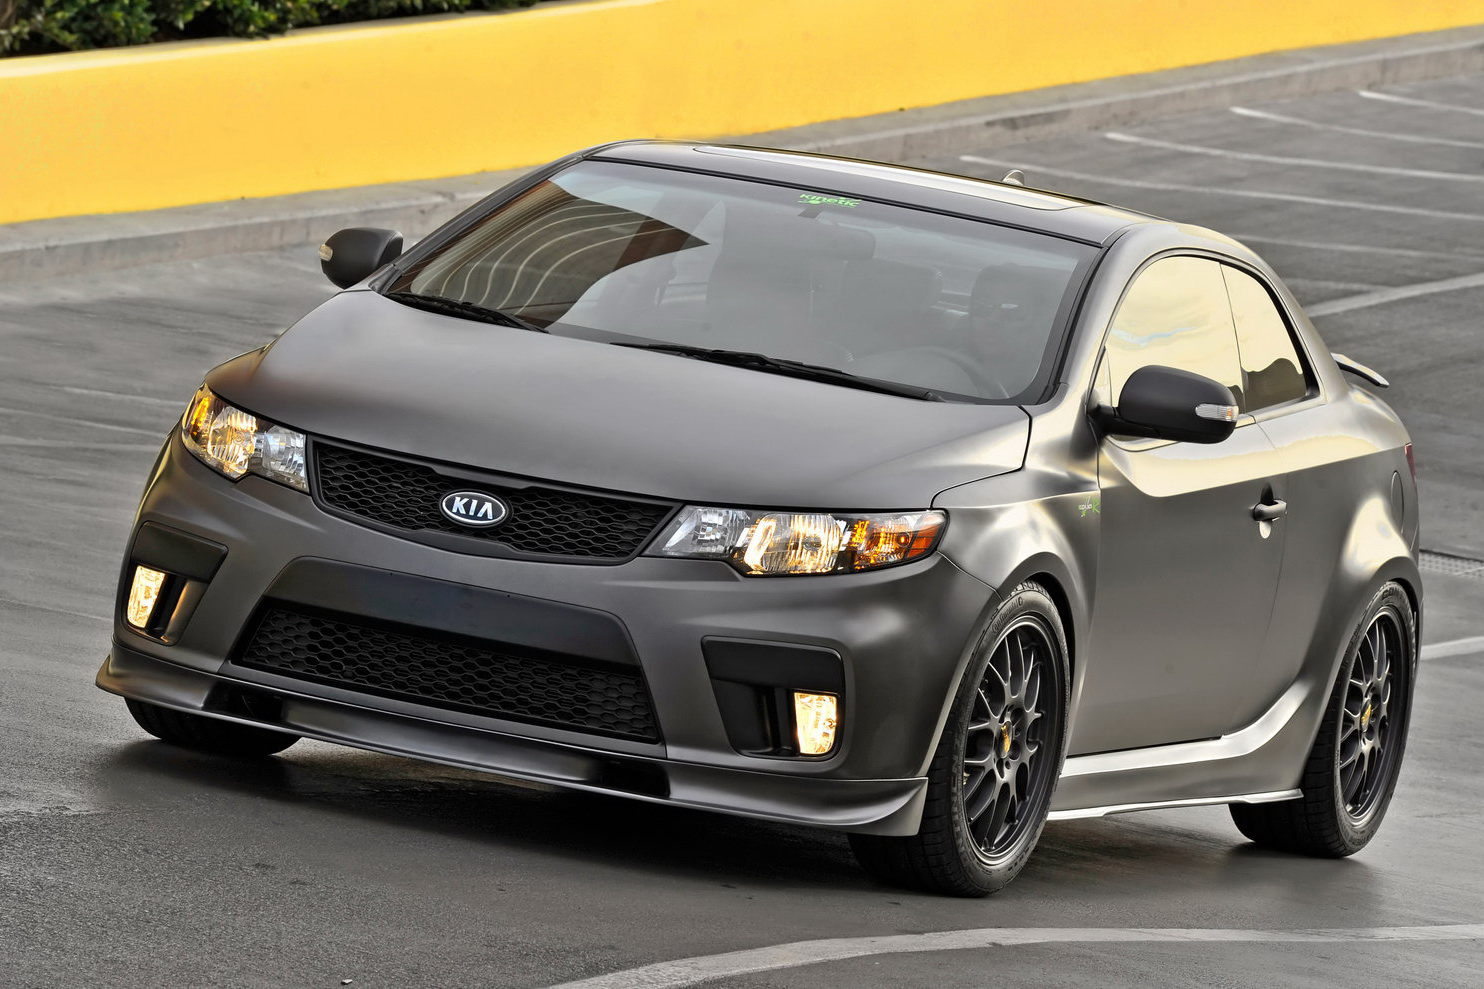 2018 Kia Forte Release Date Price together with Default besides 2016 Peugeot 208 likewise 2018 Ford Taurus besides 2014. on 2015 kia soul coupe